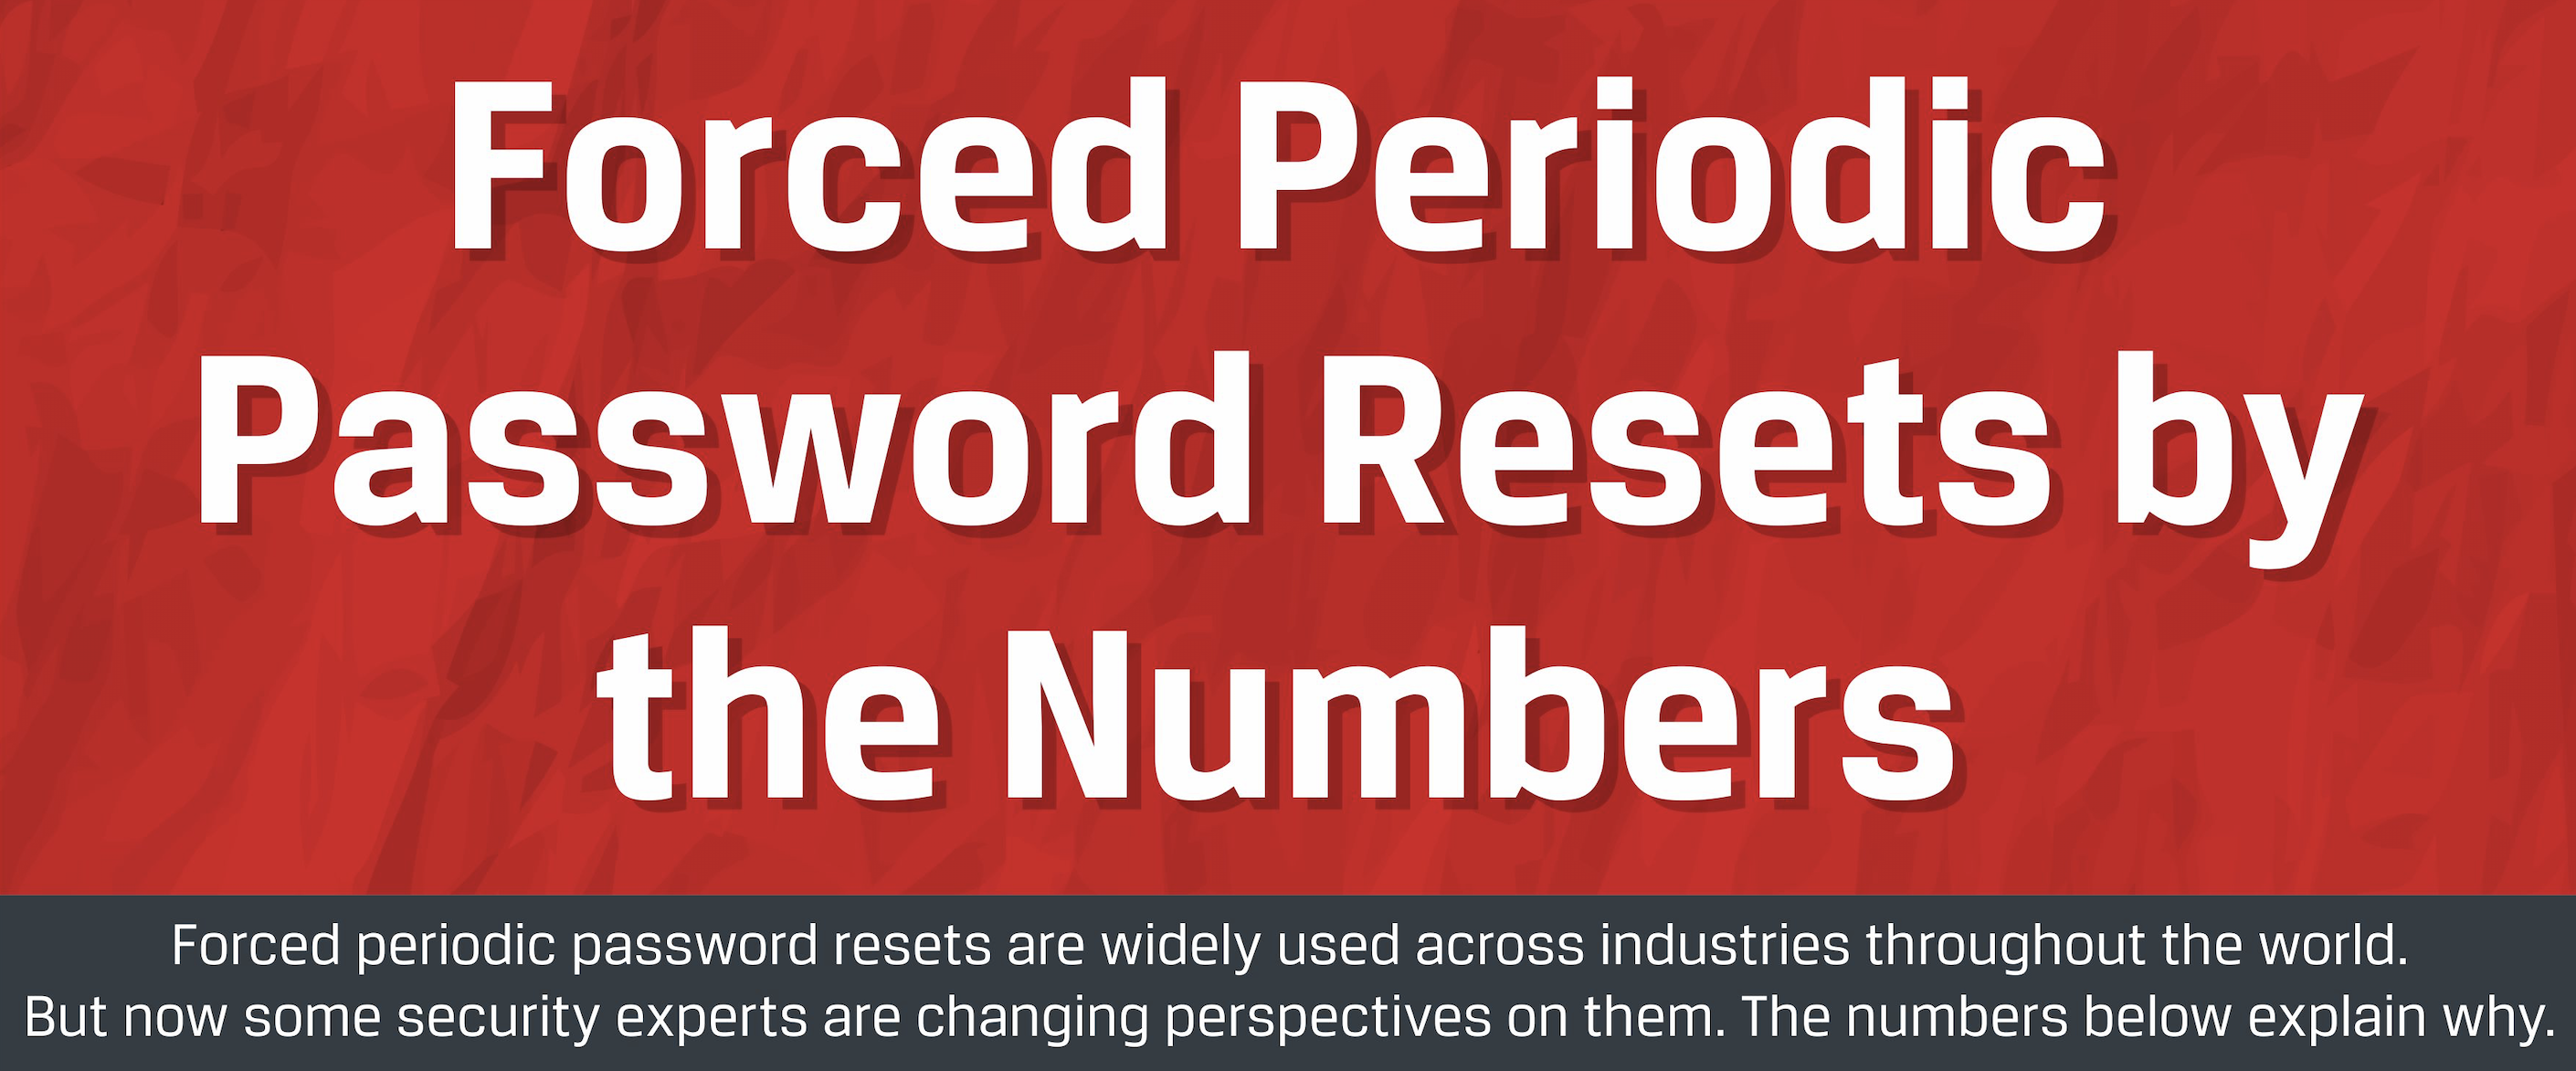 Forced Periodic Password Reset By the Numbers.